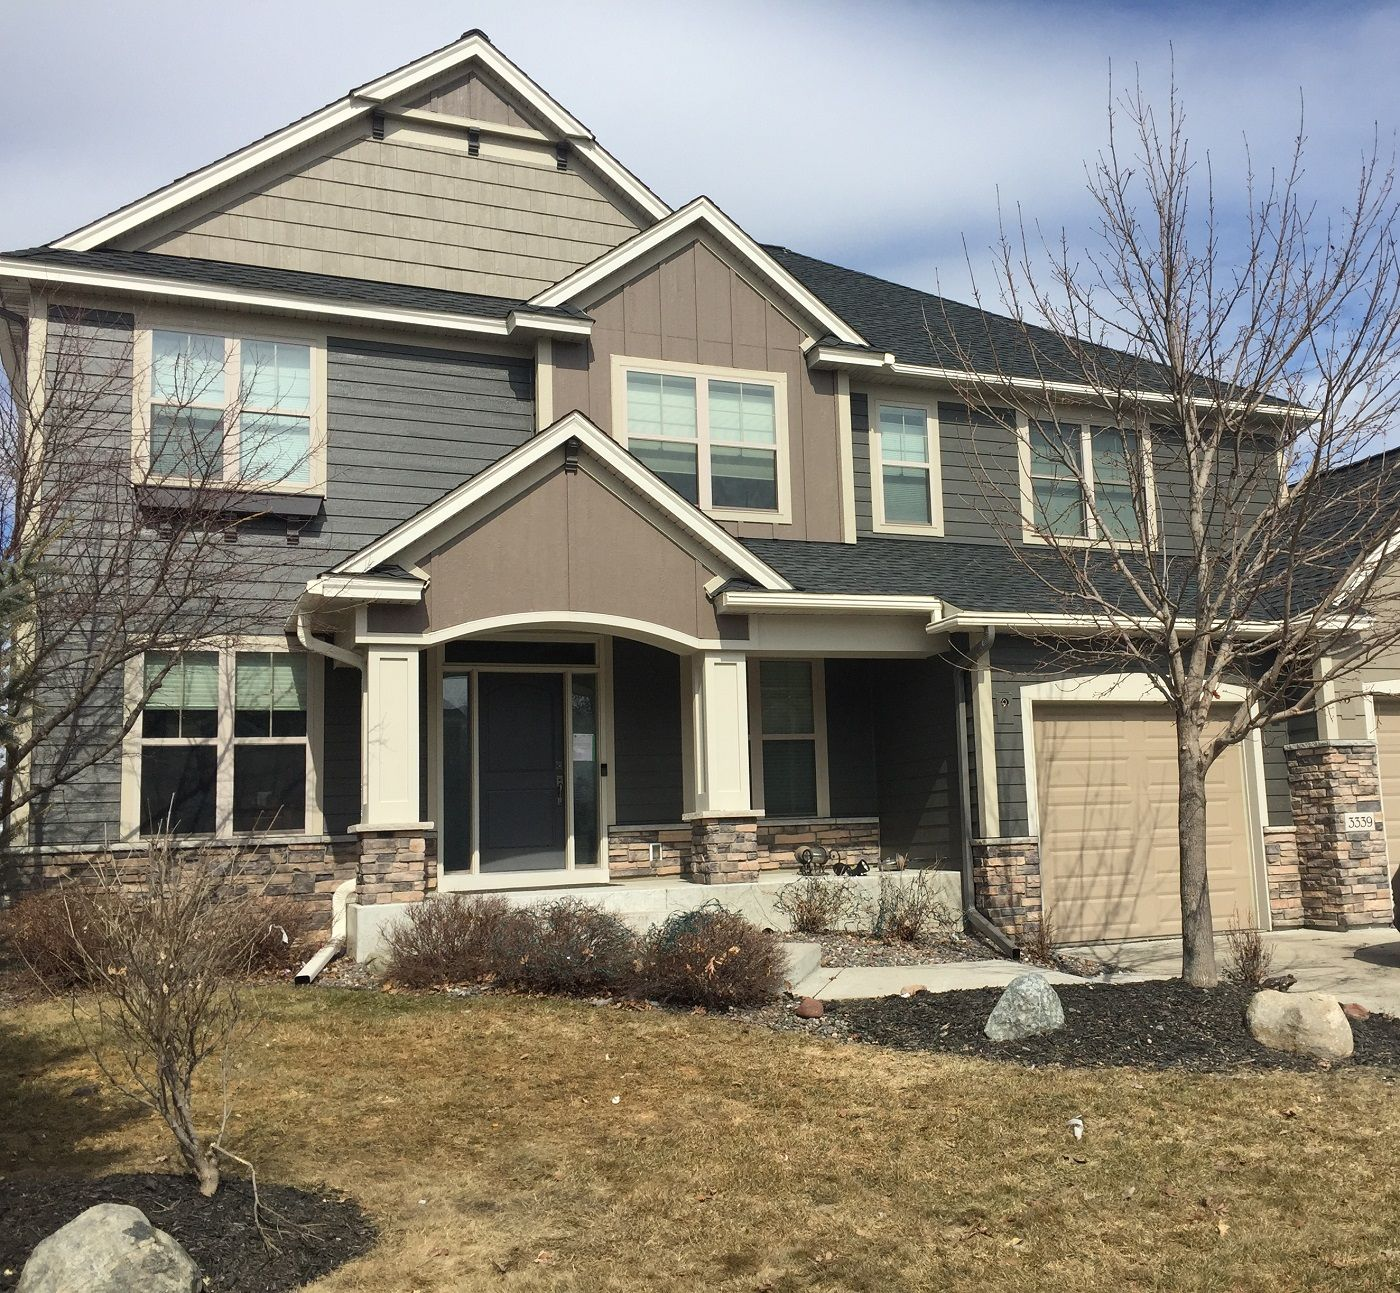 Mark Christie S Blaine Mn Roofing Siding Gutter Project House Styles Old Houses Homeowner